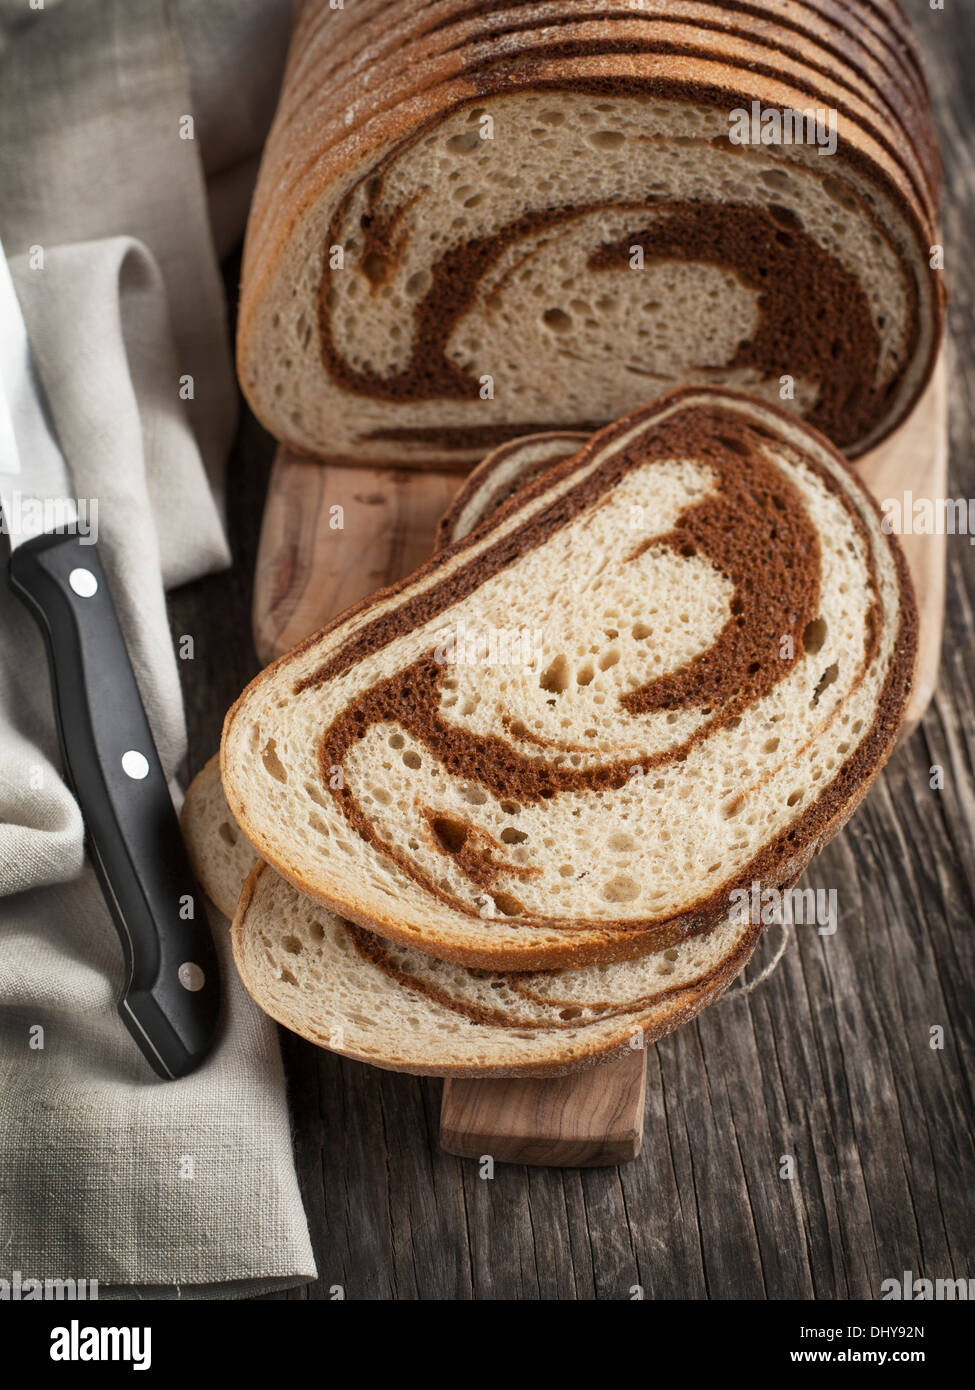 Marble rye bread Stock Photo